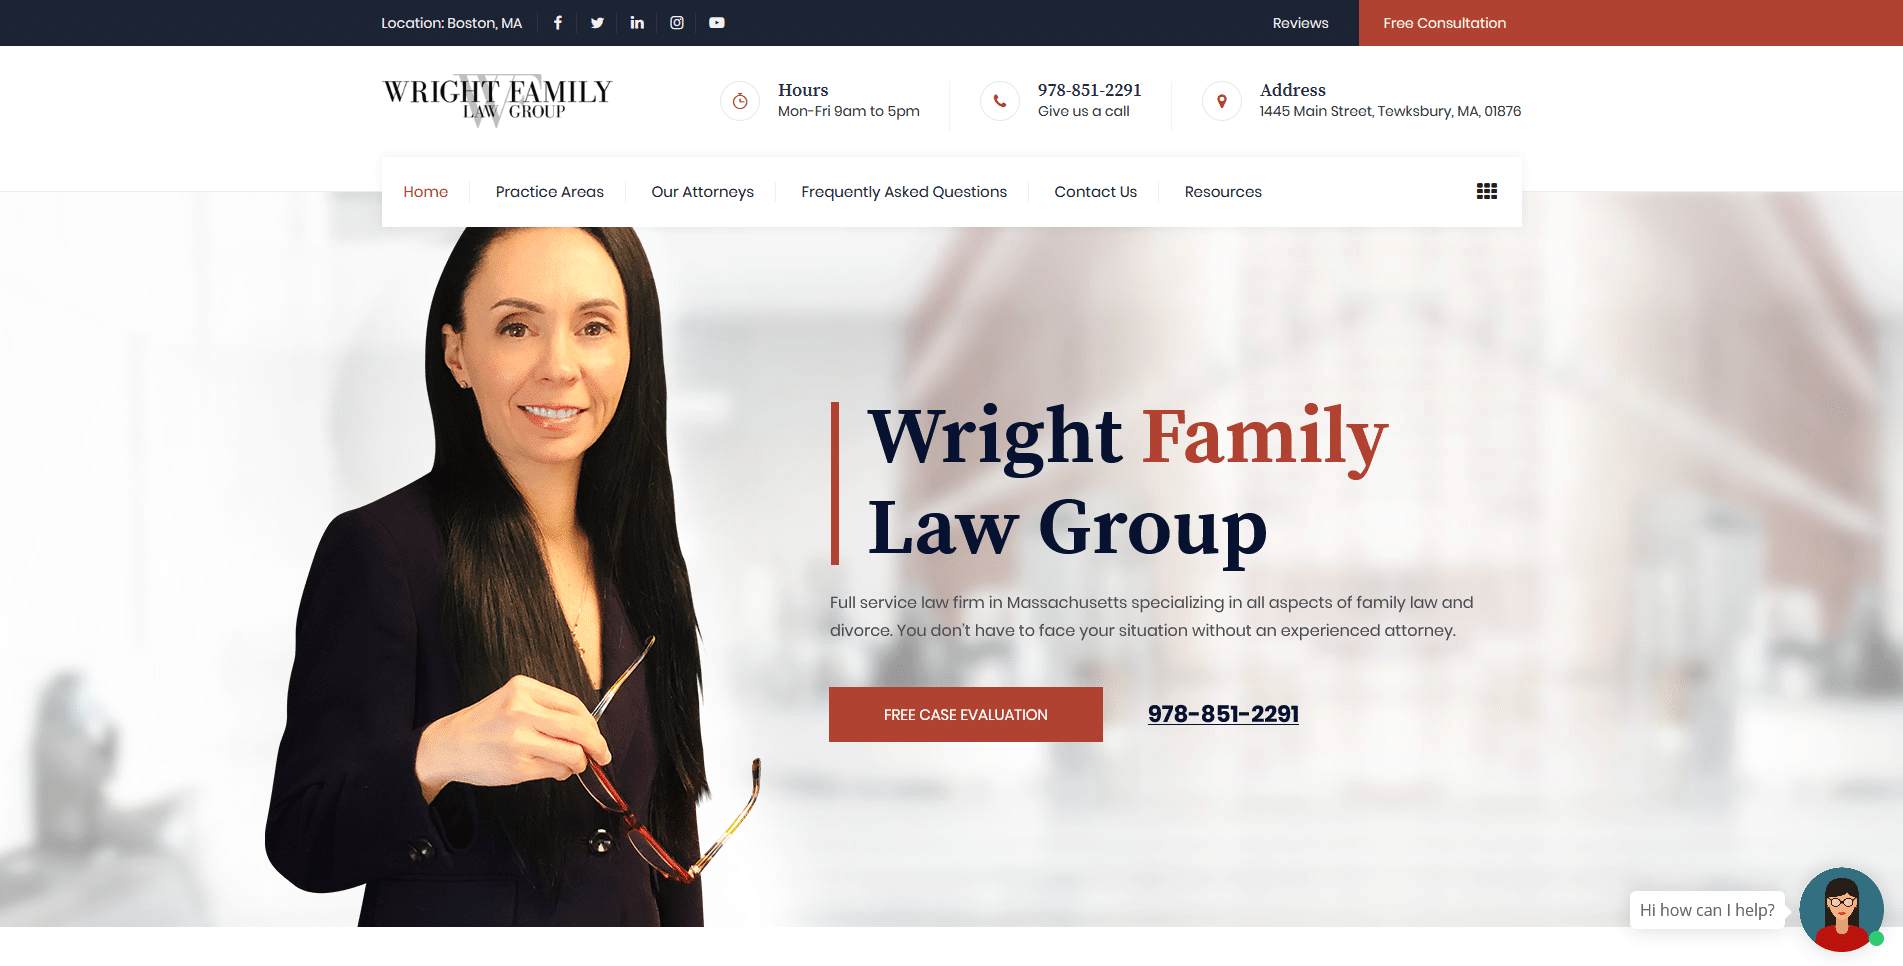 Wright Family Law Group Divorce Attorneys Boston, MA